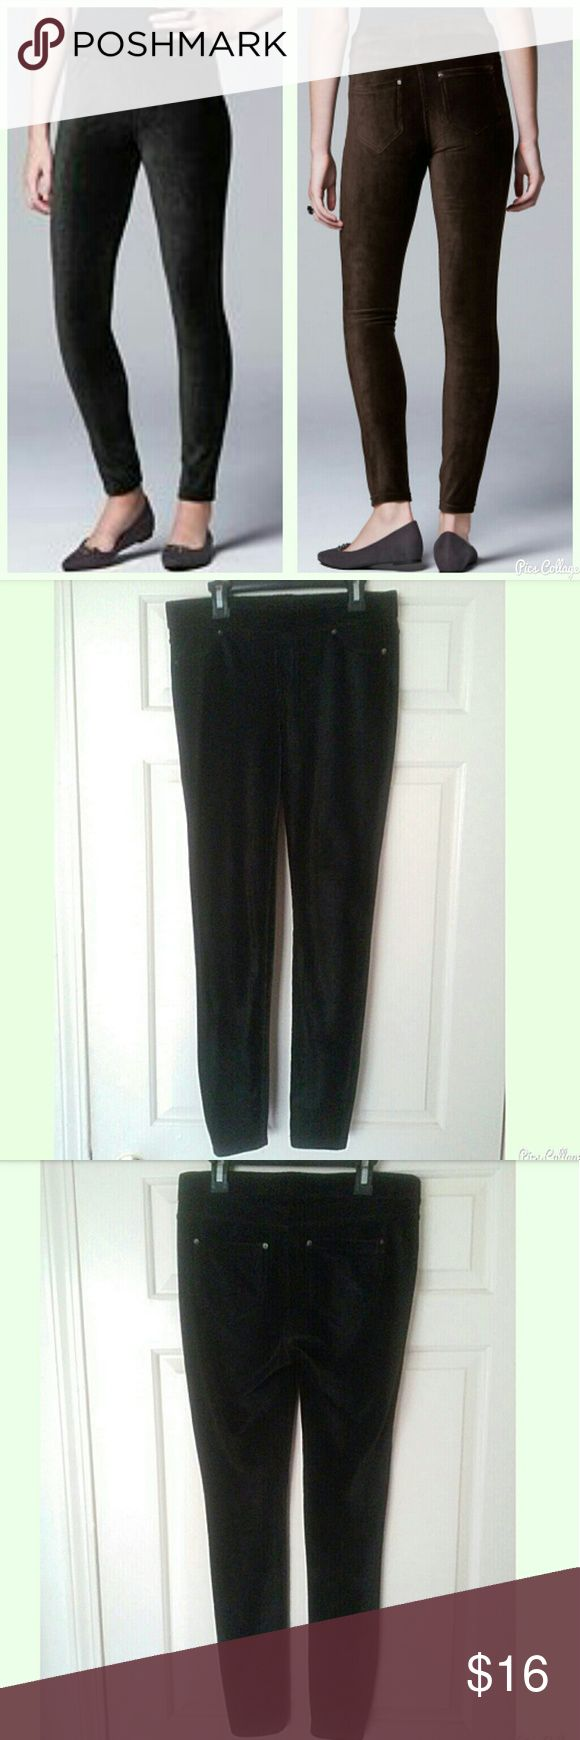 """Simply Vera Vera Wang Corduroy Leggings ✳Simply Vera Vera Wang ✳Black Corduroy Leggings ✳2 faux front pockets ✳2 back pockets ✳Elastic waistband ✳28"""" approx. inseam ✳95% Polyester, 5% Spandex ✳Machine wash cold ✳In great used condtion. No damage. Looks great! ✳Size Small  Stock photo exact as listing. Only have black pair.   ☑OFFERS WELCOMED☑ ☑BUNDLE and SAVE☑ Simply Vera Vera Wang Pants Leggings"""